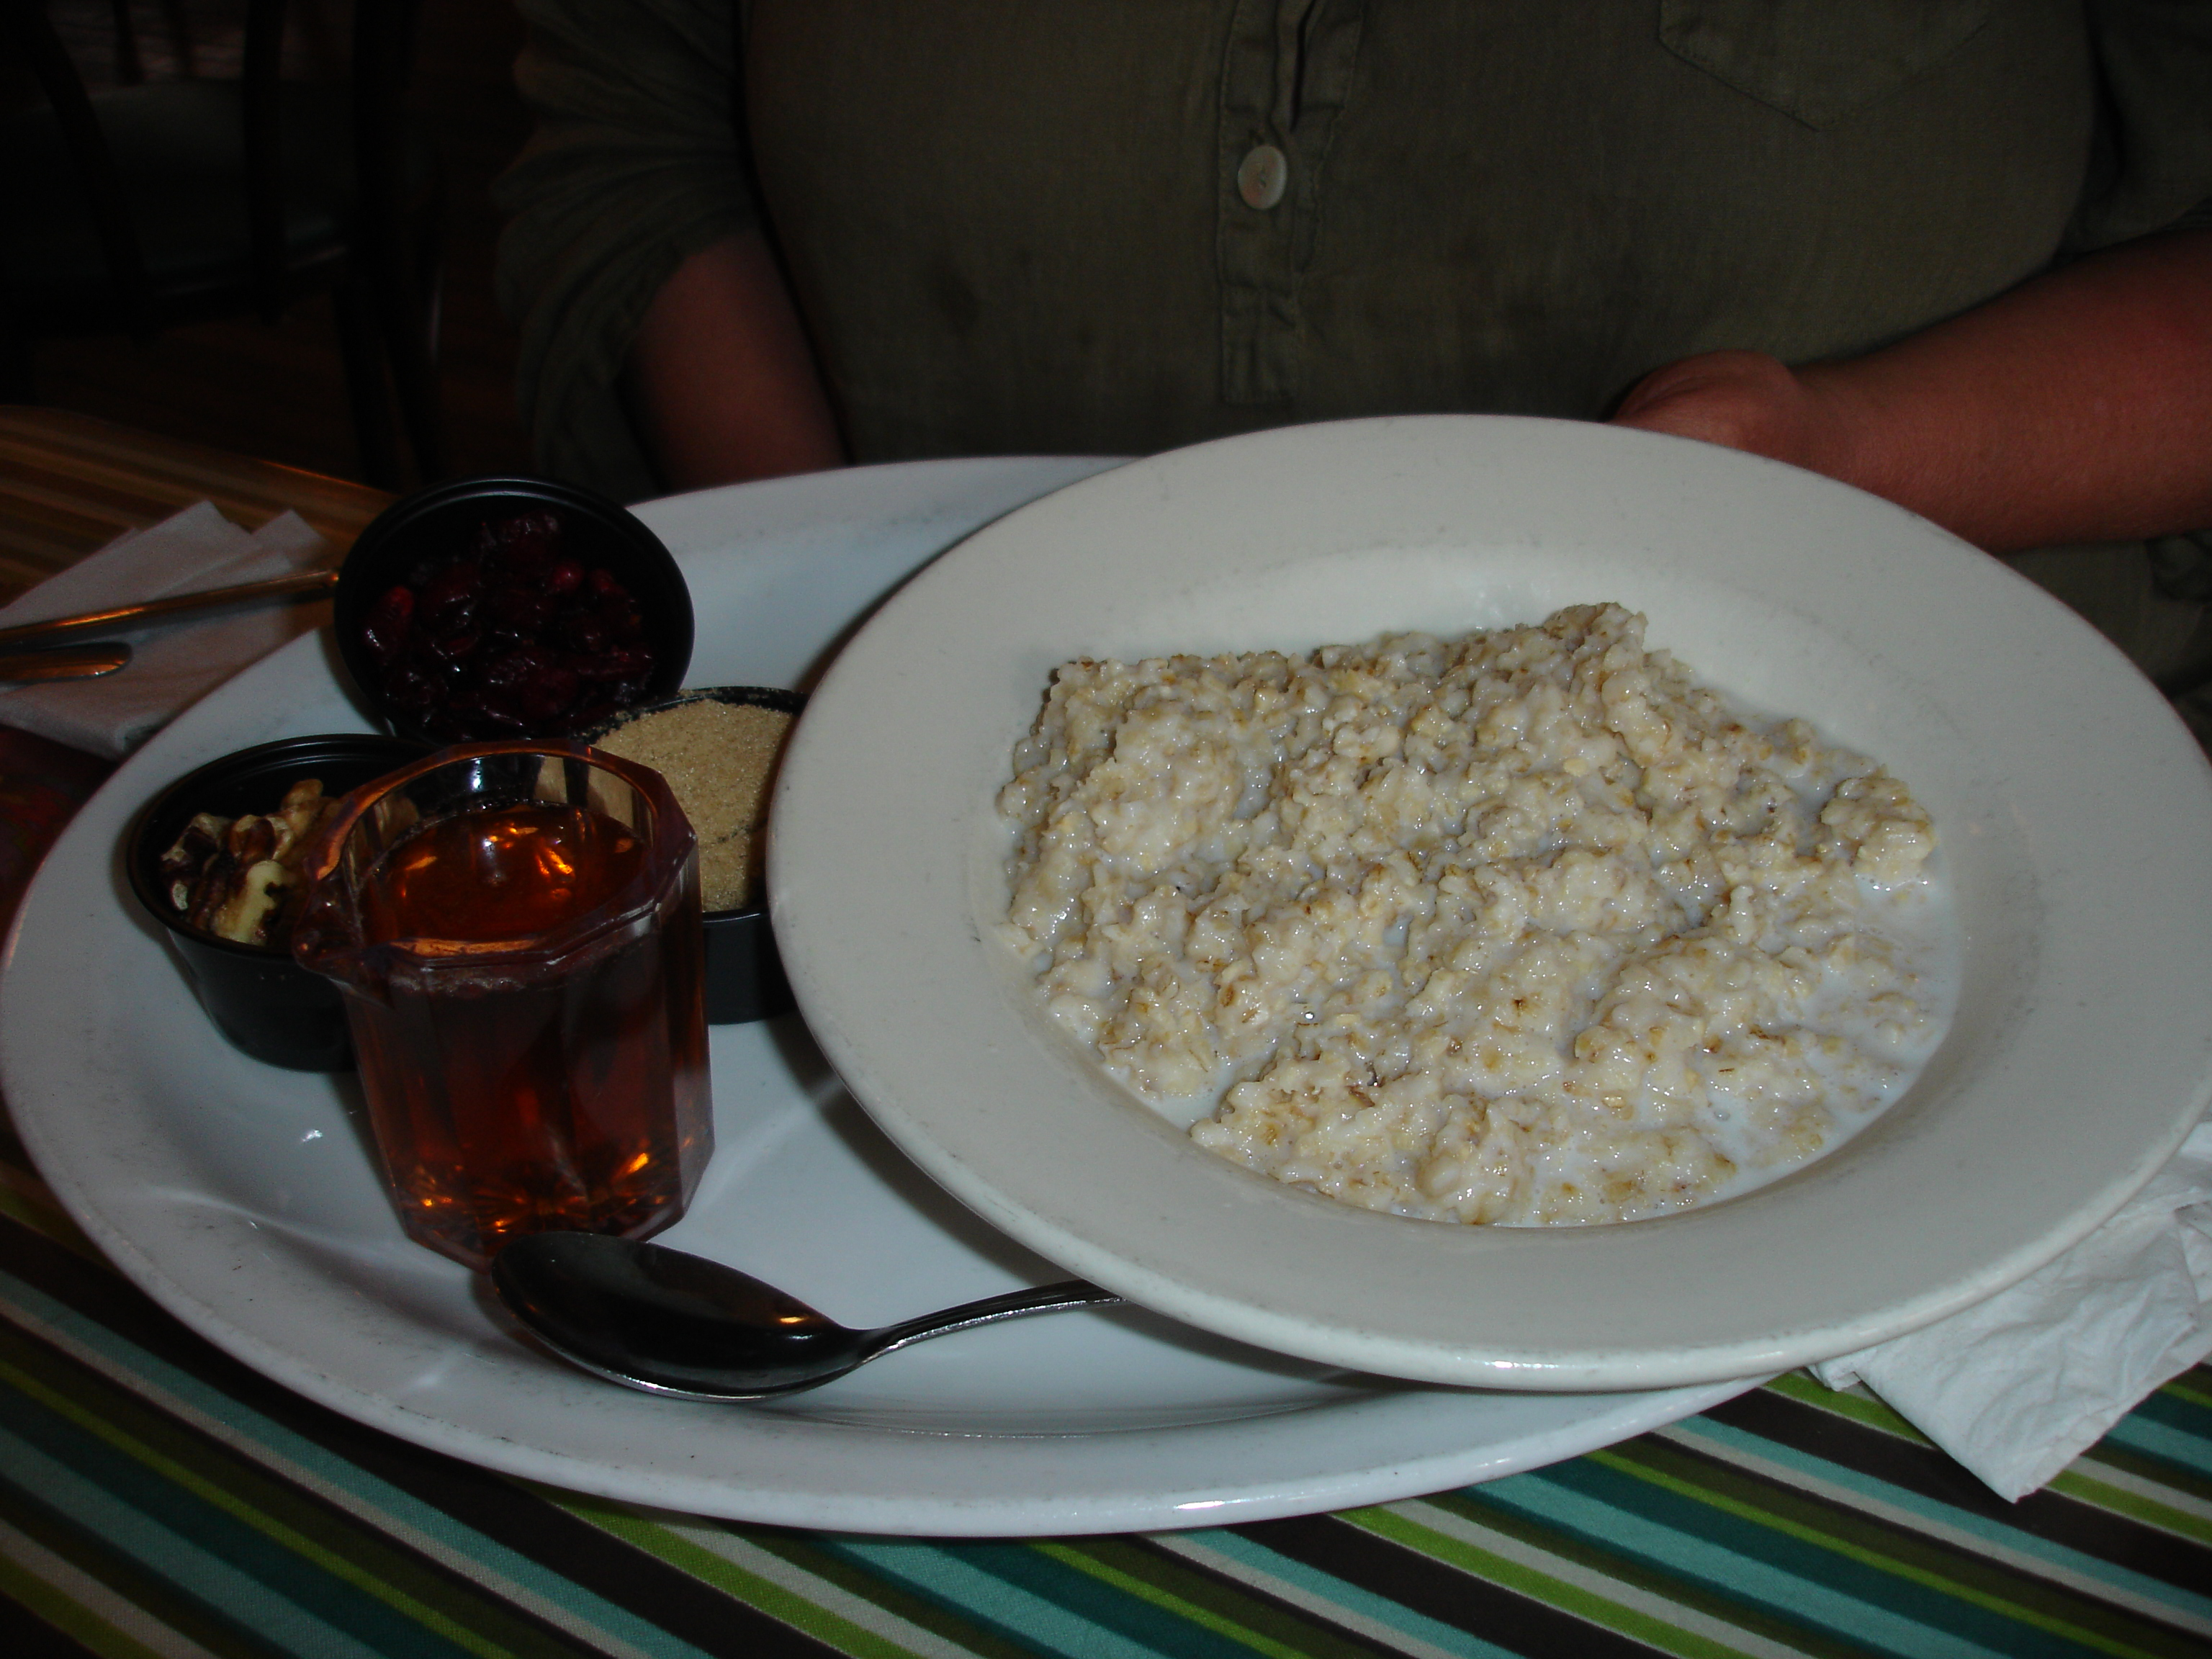 Oatmeal with all the fixin's